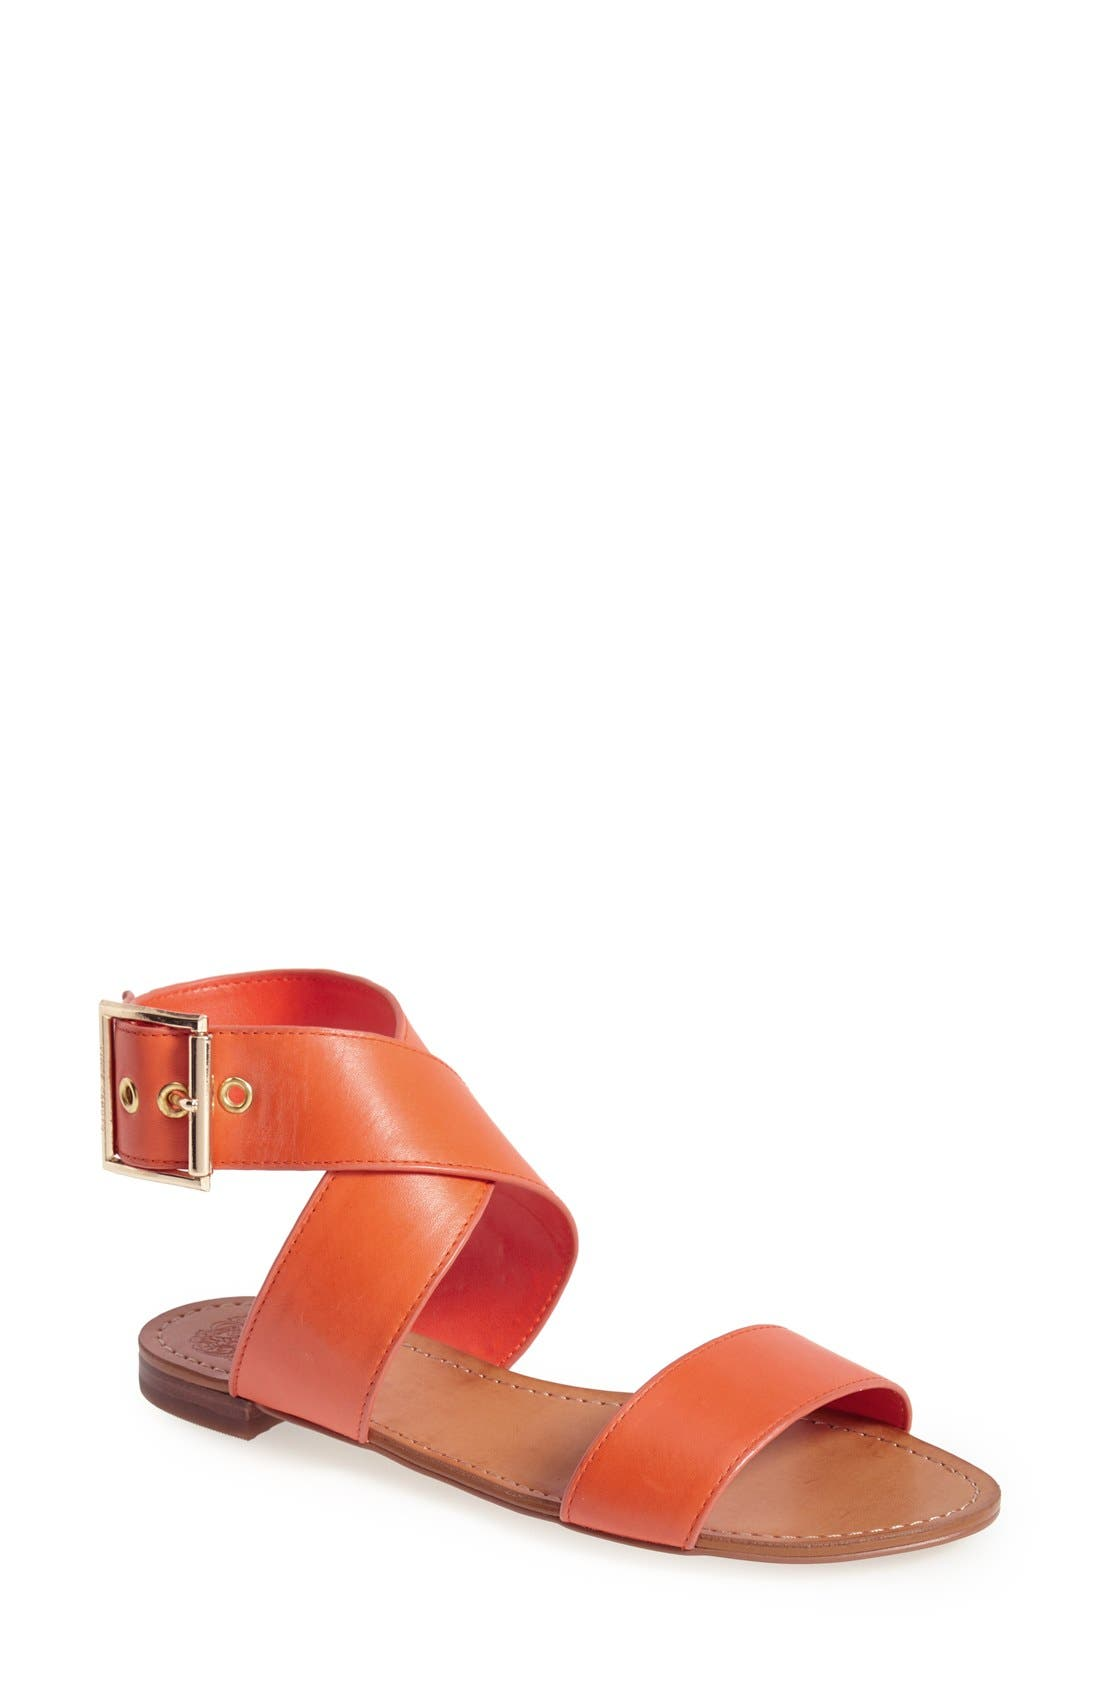 Main Image - Vince Camuto 'Maren' Leather Ankle Strap Sandal (Women)